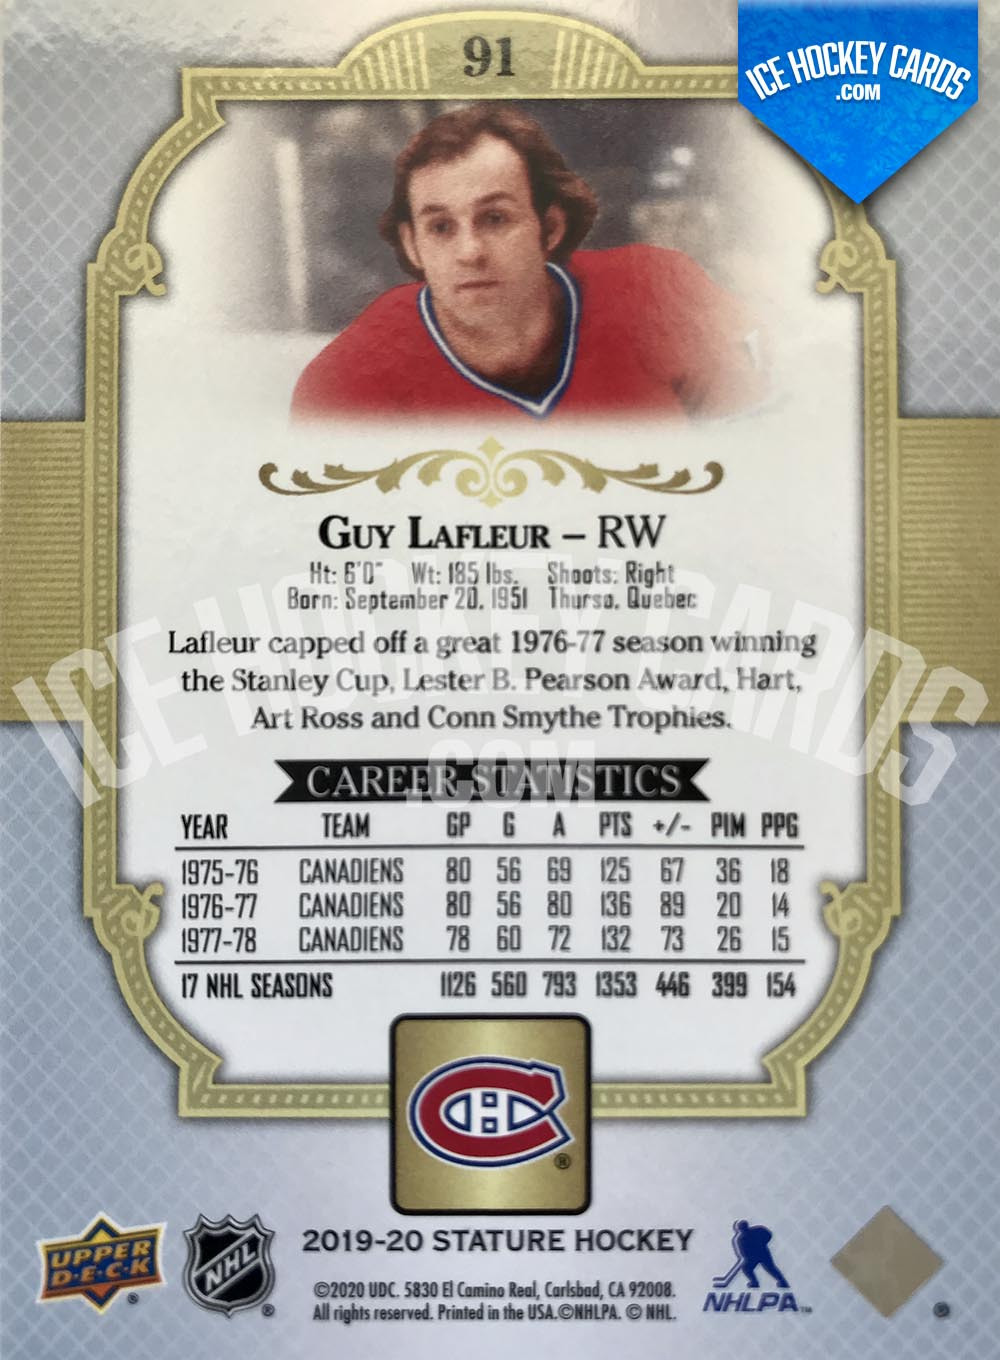 Upper Deck - Stature 2019-20 - Guy Lafleur Red Base Card # to 20 RARE back